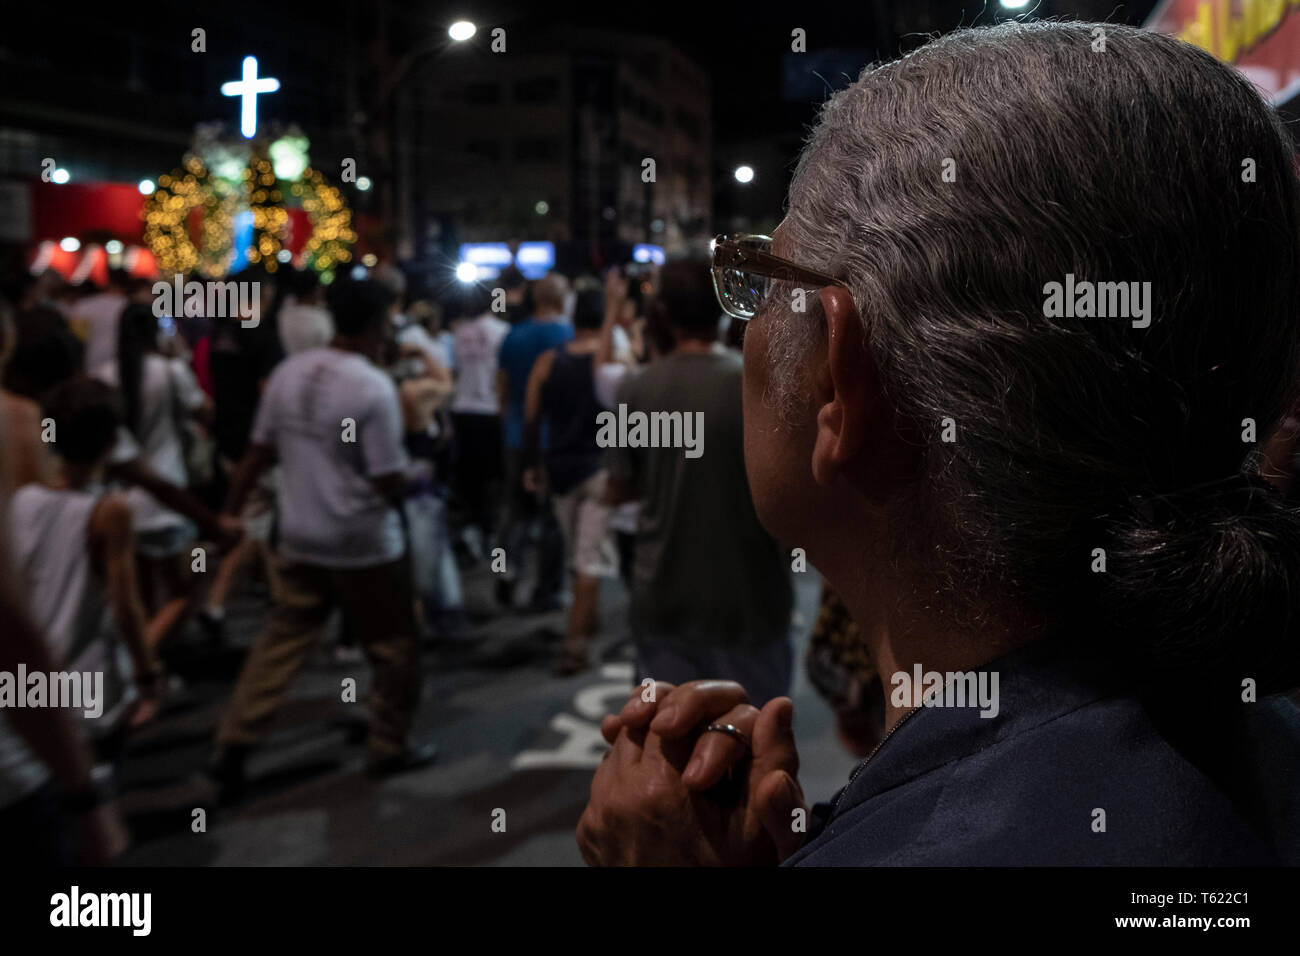 27 April 2019, Brazil, Vitória do Espírito Santo: A believer prays during the pilgrimage in the city of Vitória do Espírito Santo in the southeast of Brazil. The 'Romería de los hombres' (men's pilgrimage) is a pilgrimage of Catholic believers that has been celebrated every year since 1958. The pilgrimage is considered one of the three largest in Brazil. According to the Catholic Church, about 700,000 people attended the event this year. Photo: Diego Herculano/dpa - Stock Image